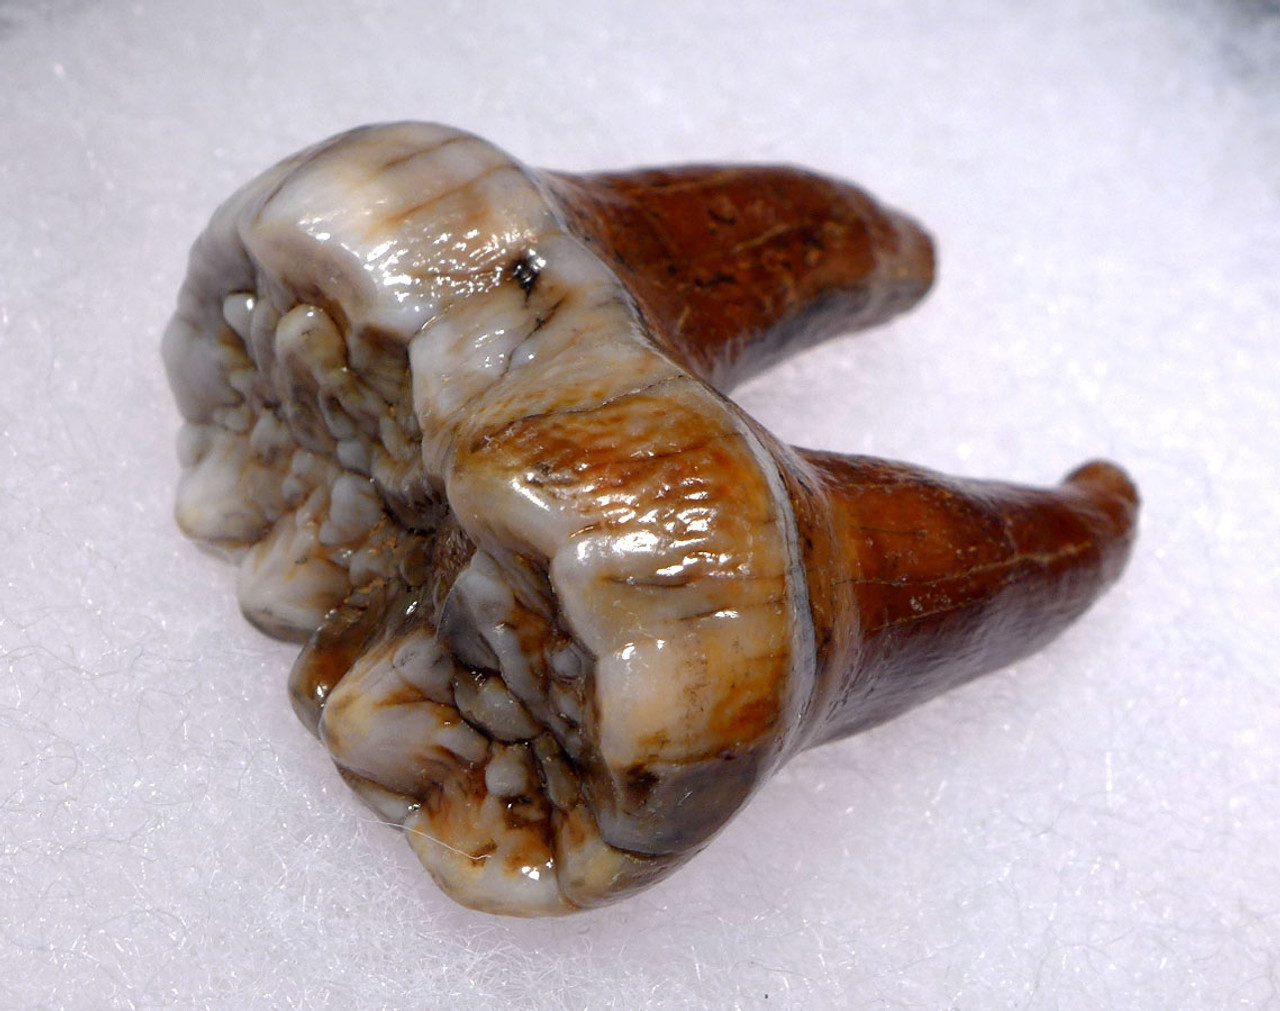 SUPERB AUSTRIAN CAVE BEAR FOSSIL MOLAR TOOTH WITH FULL ROOT FROM THE FAMOUS DRACHENHOHLE DRAGONS CAVE *LMX240